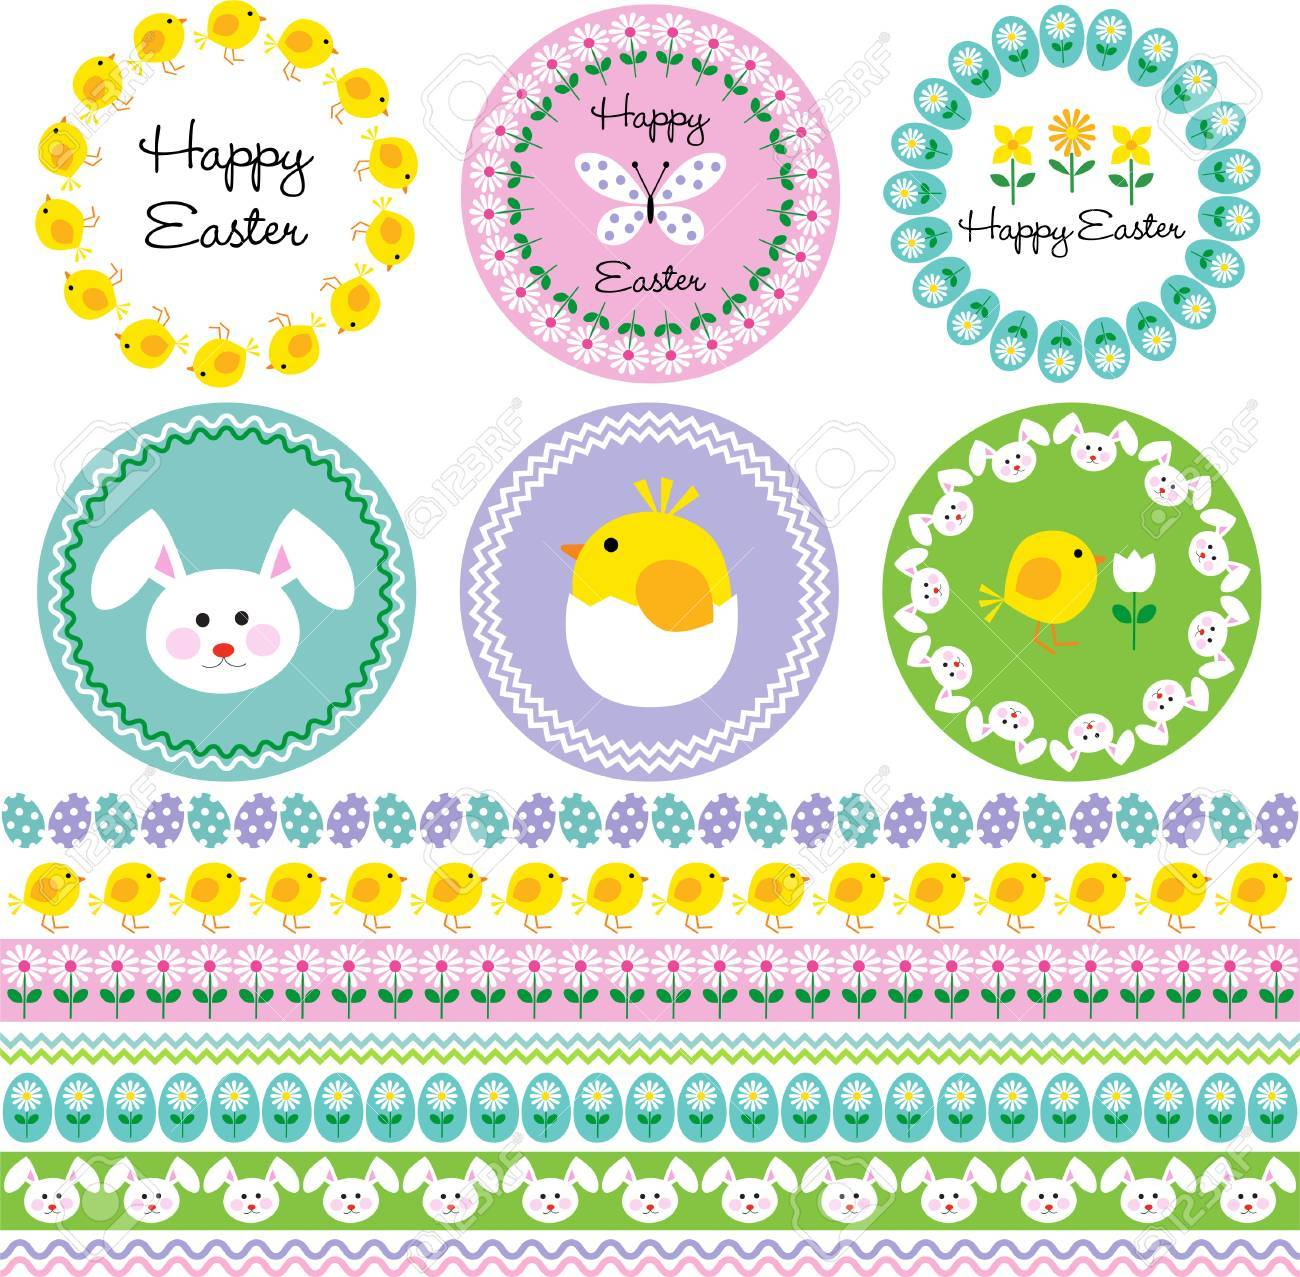 Easter Frames And Borders Royalty Free Cliparts, Vectors, And Stock ...